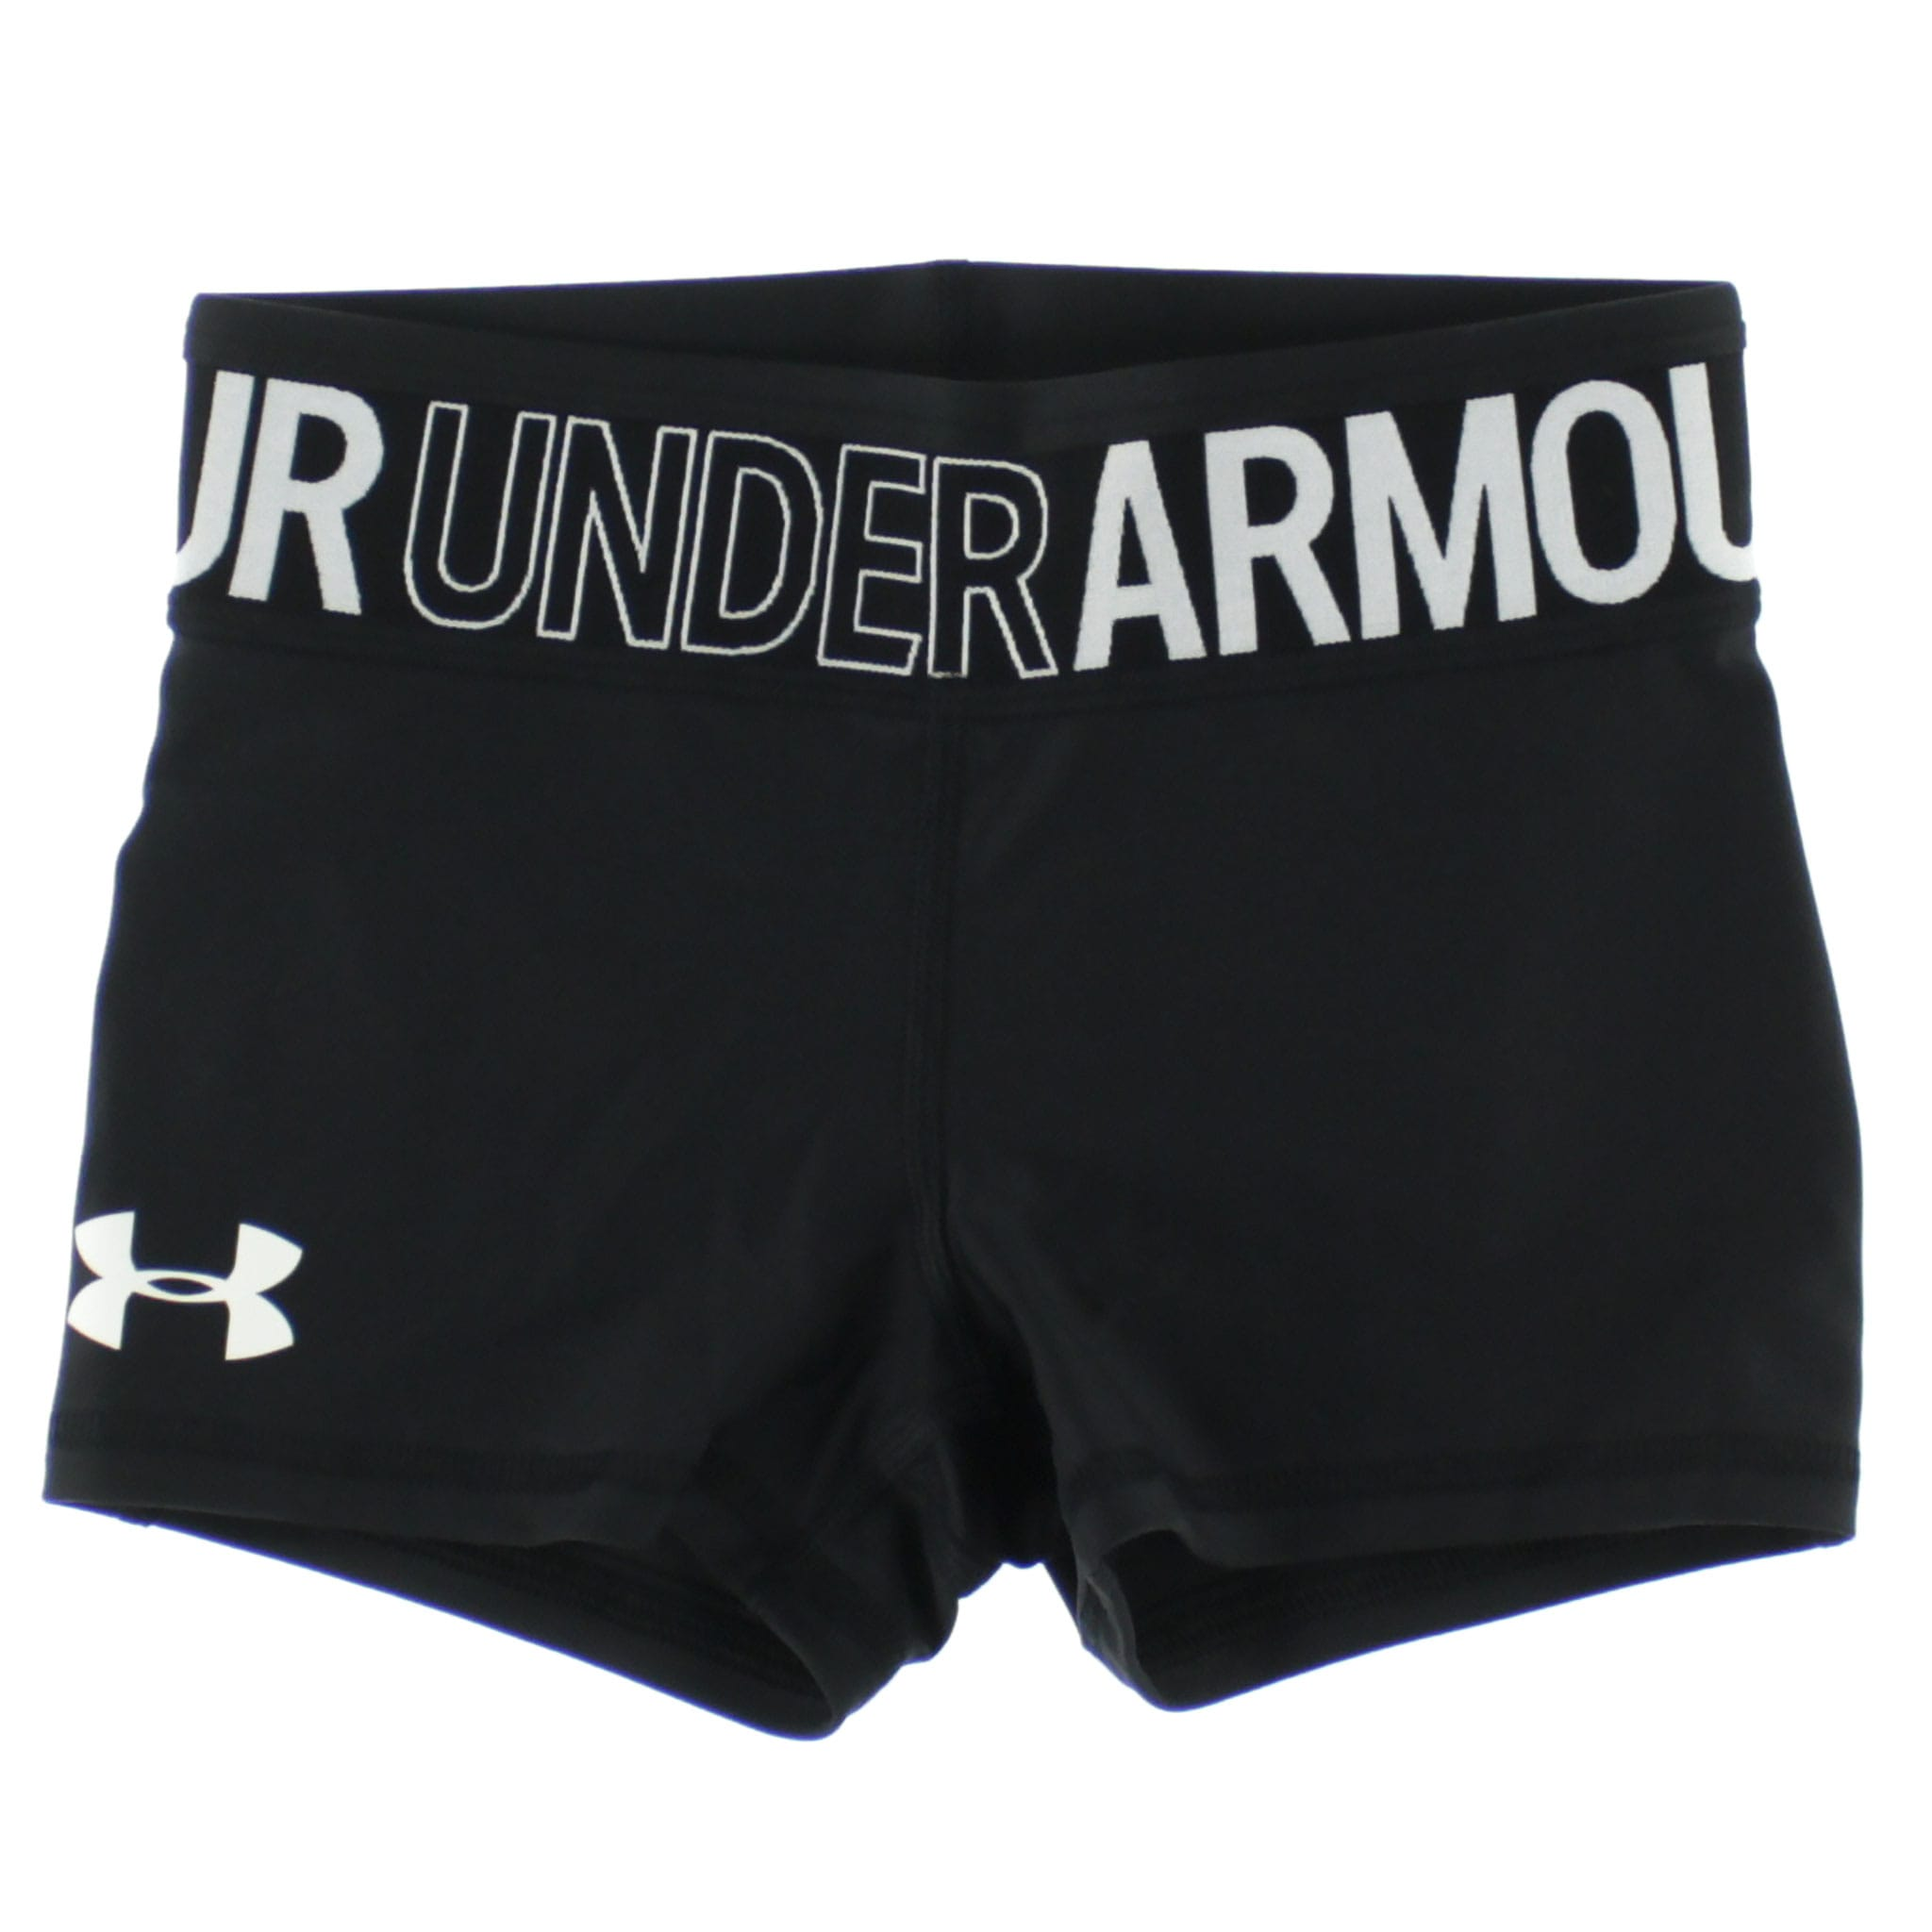 bfd6ac2c62 Under Armour Armour Heatgear Shorty 8-16 - Clement